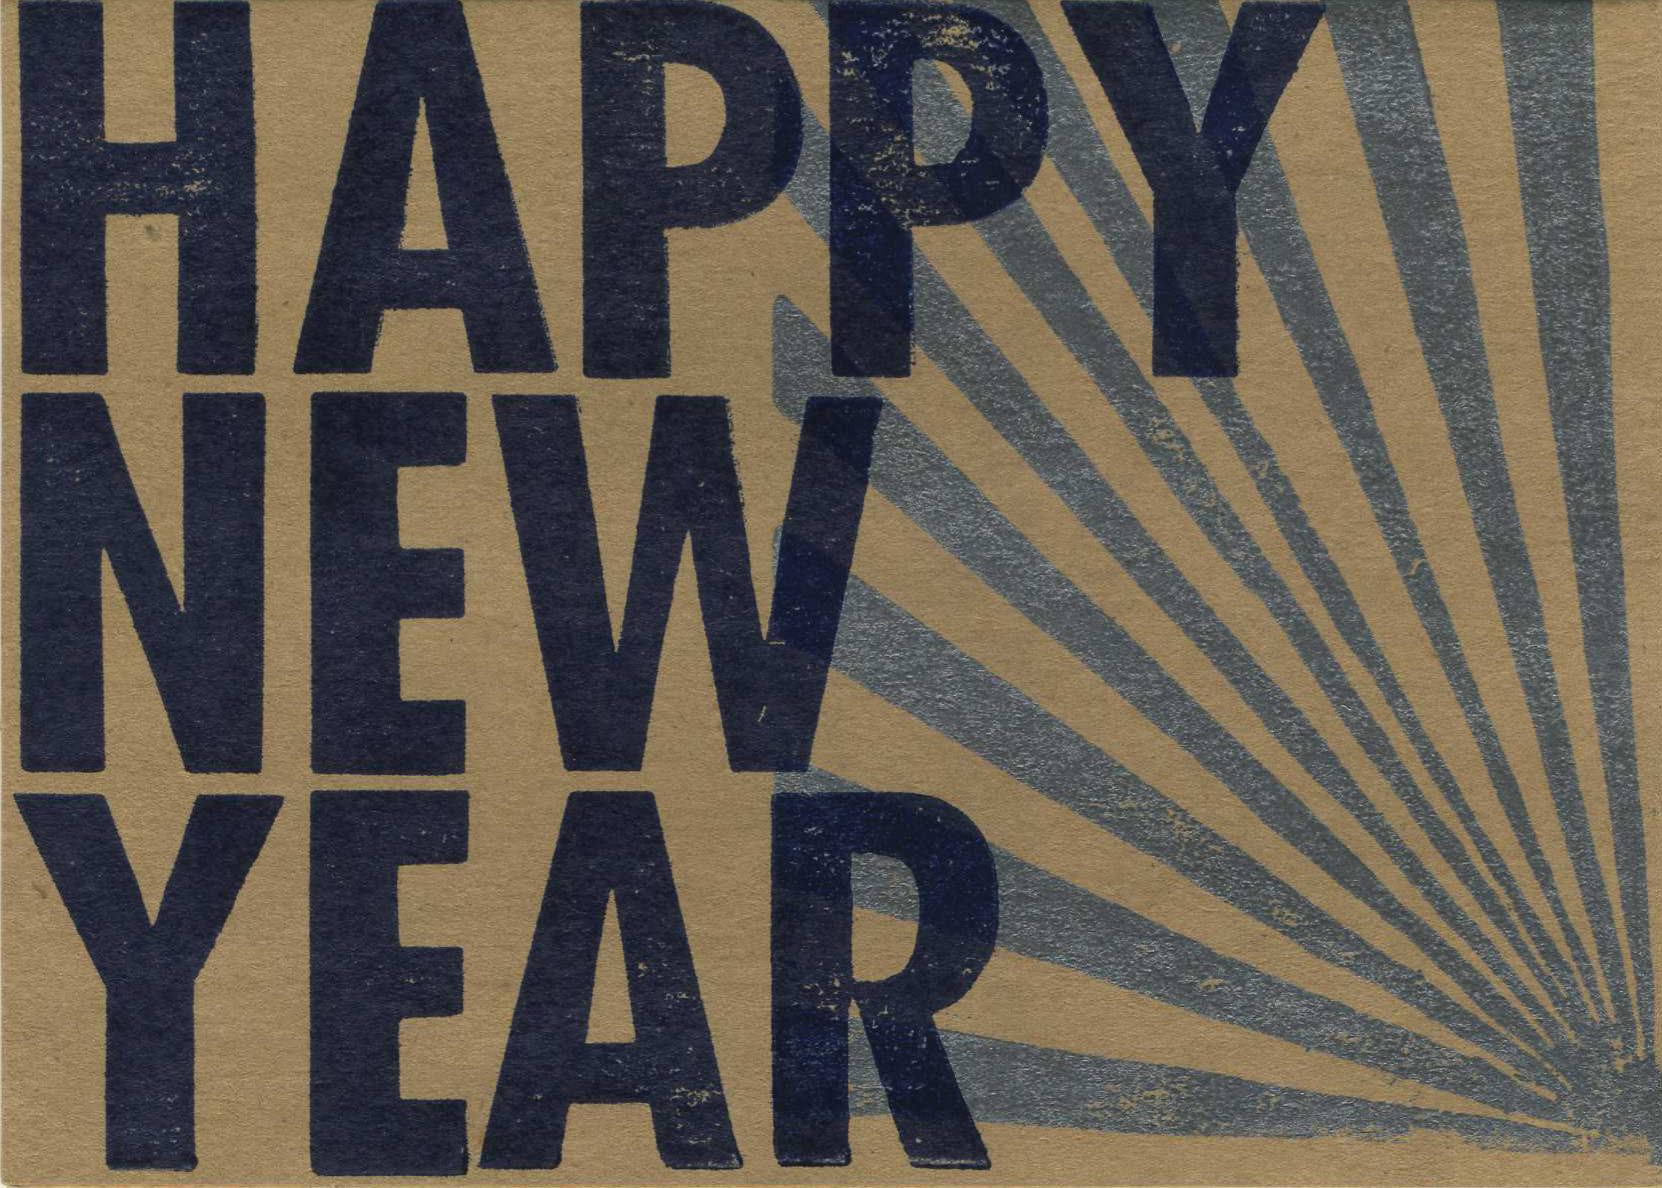 happy new year hand printed letterpress card